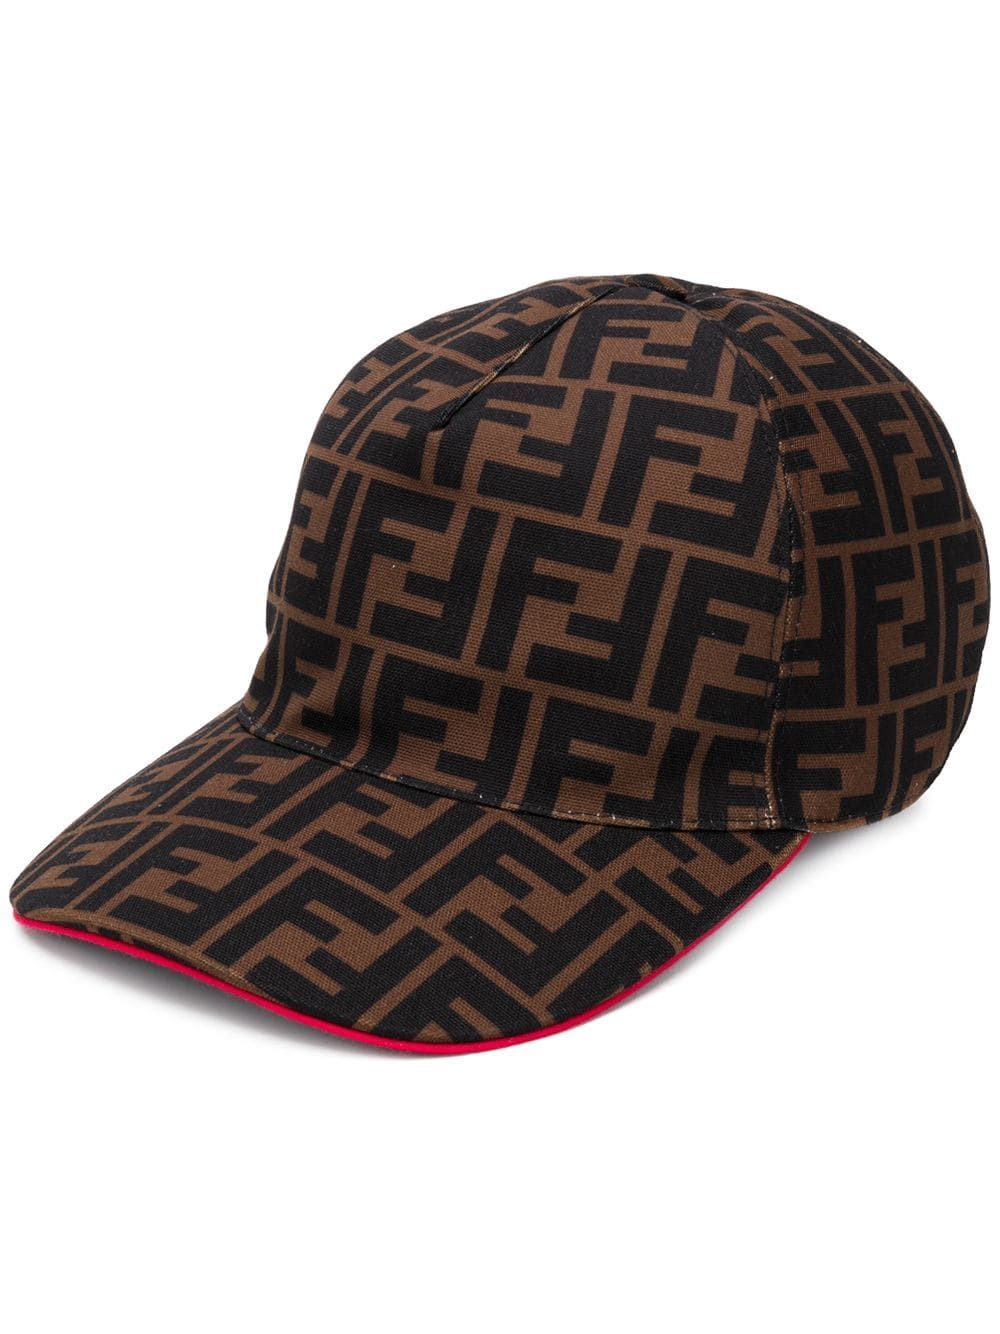 FENDI LOGO HAT - BROWN  084222a1df49